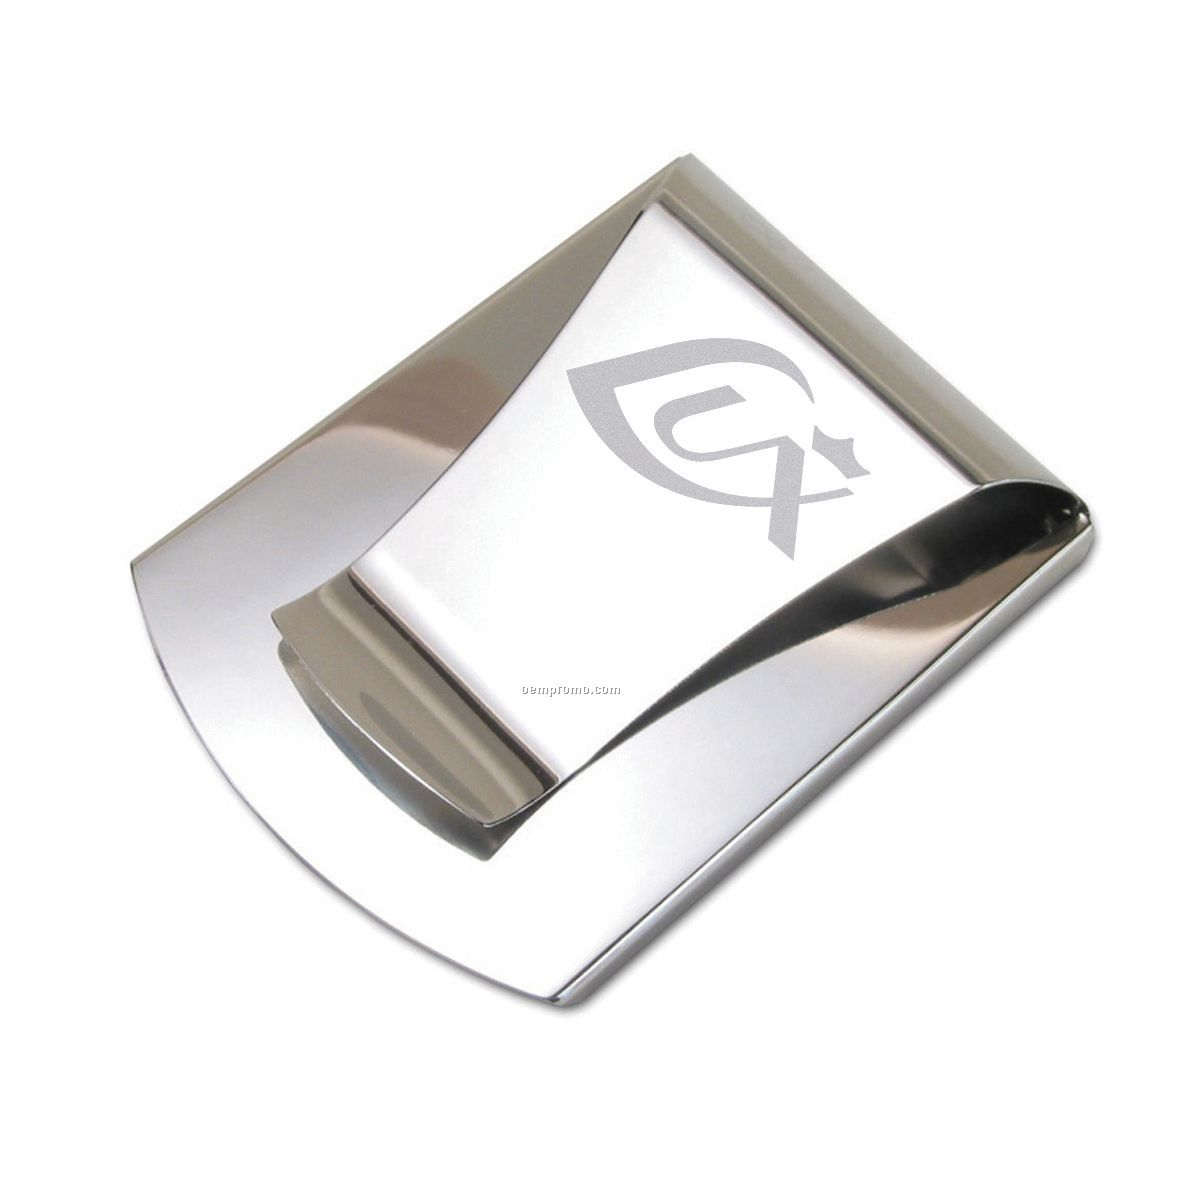 Smart Money Clip - Polished Stainless Steel